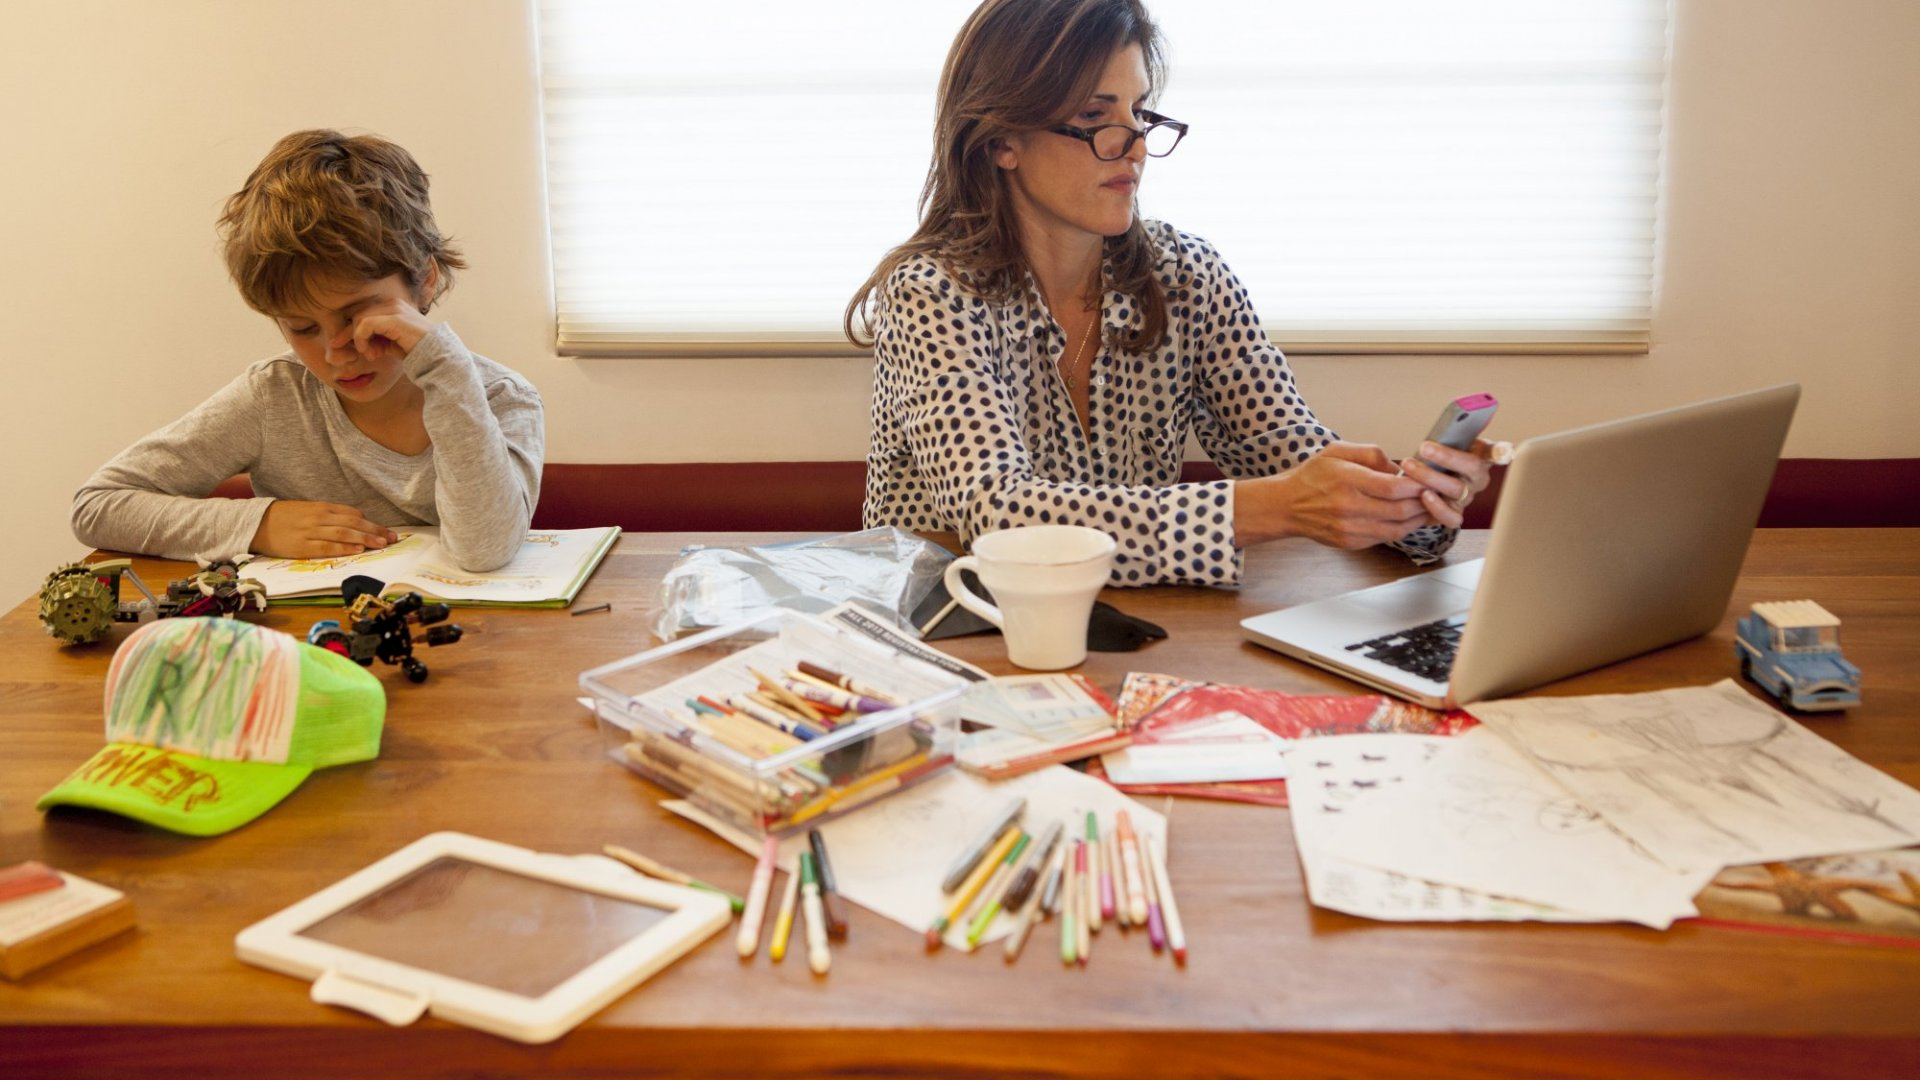 9 Unforgettable Lessons I Learned From My Working Mother